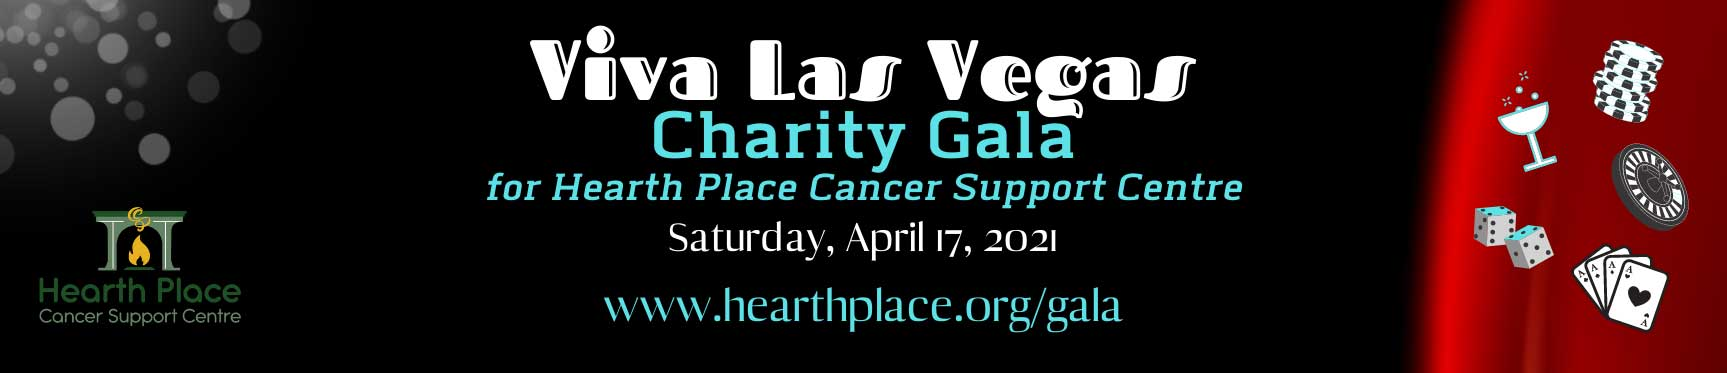 Viva Las Vegas Charity Gala for Hearth Place Cancer Support Centre, April 17, 2021, hearthplace.org/gala